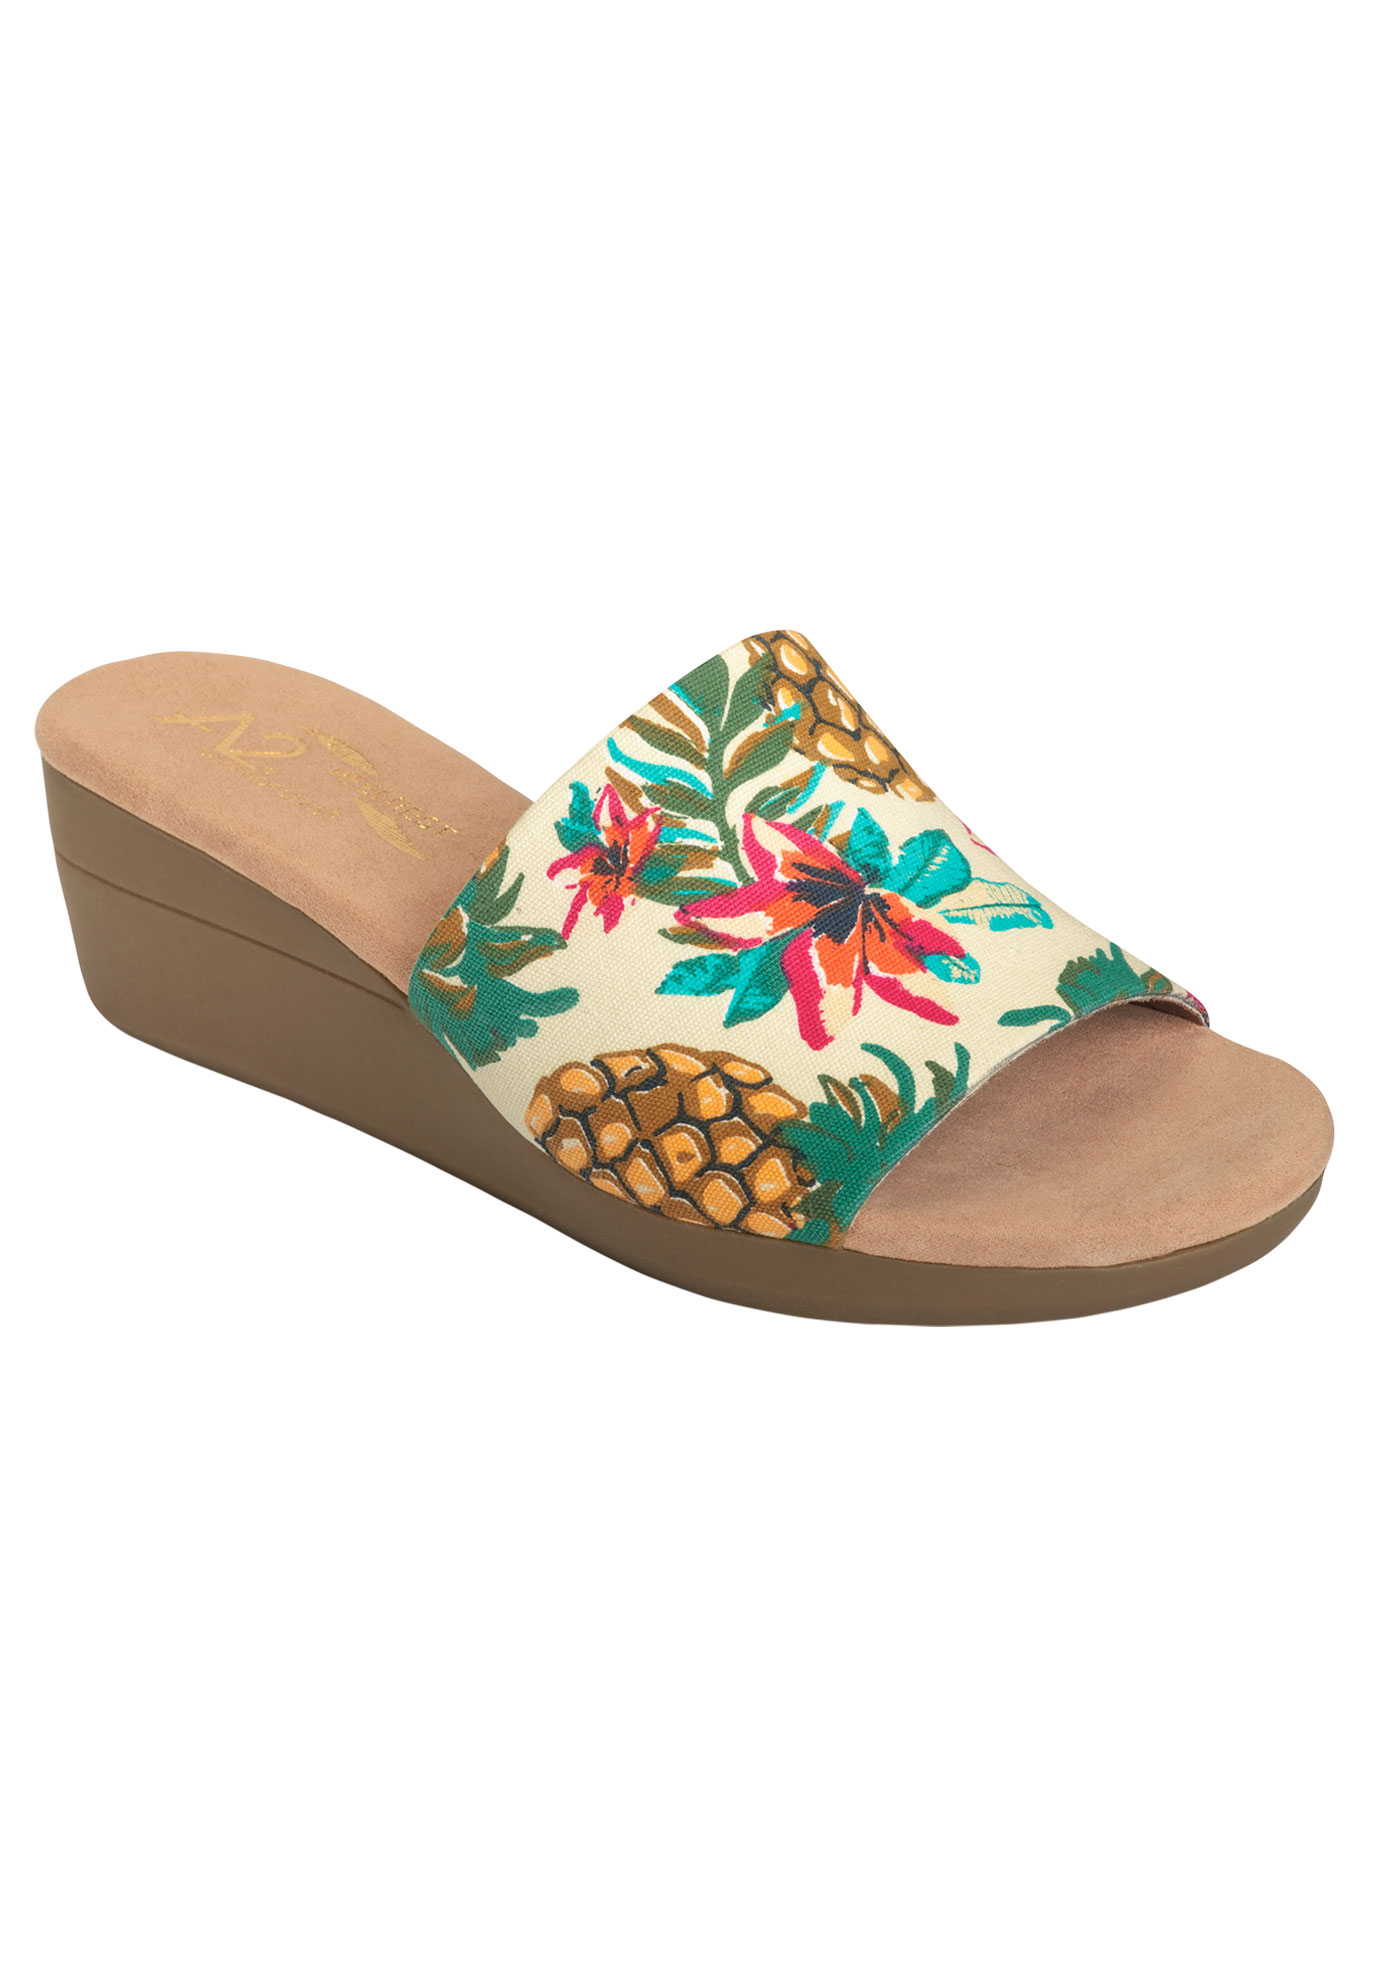 3c5bfd94bbbc Sunflower Sandal by A2 by Aerosoles®